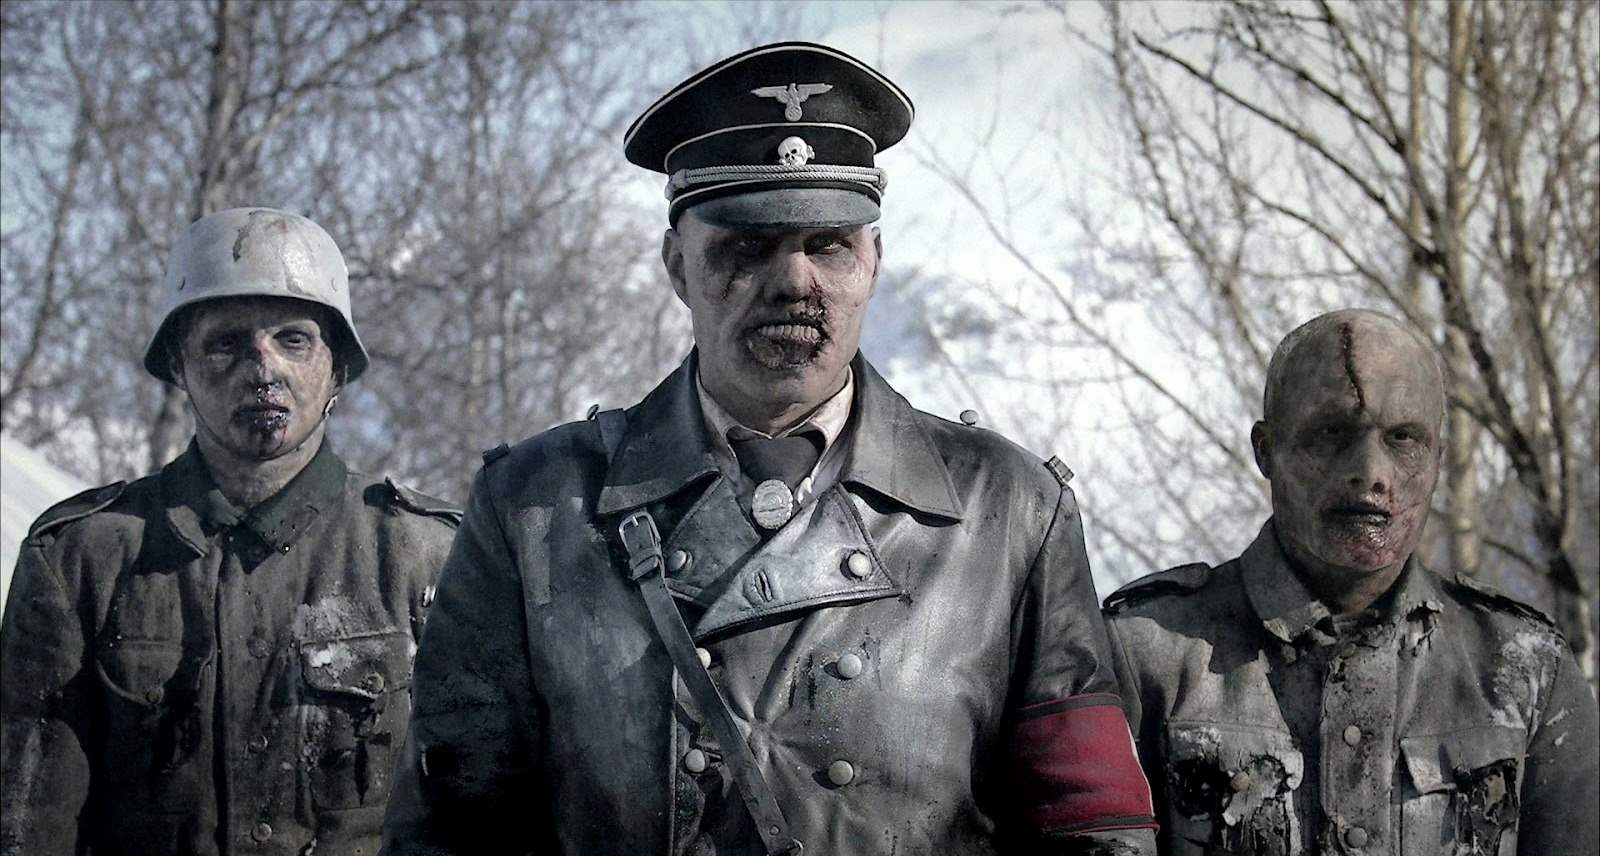 10 Years After Its Release, Dead Snow Packs a Gory, Satisfying Punch